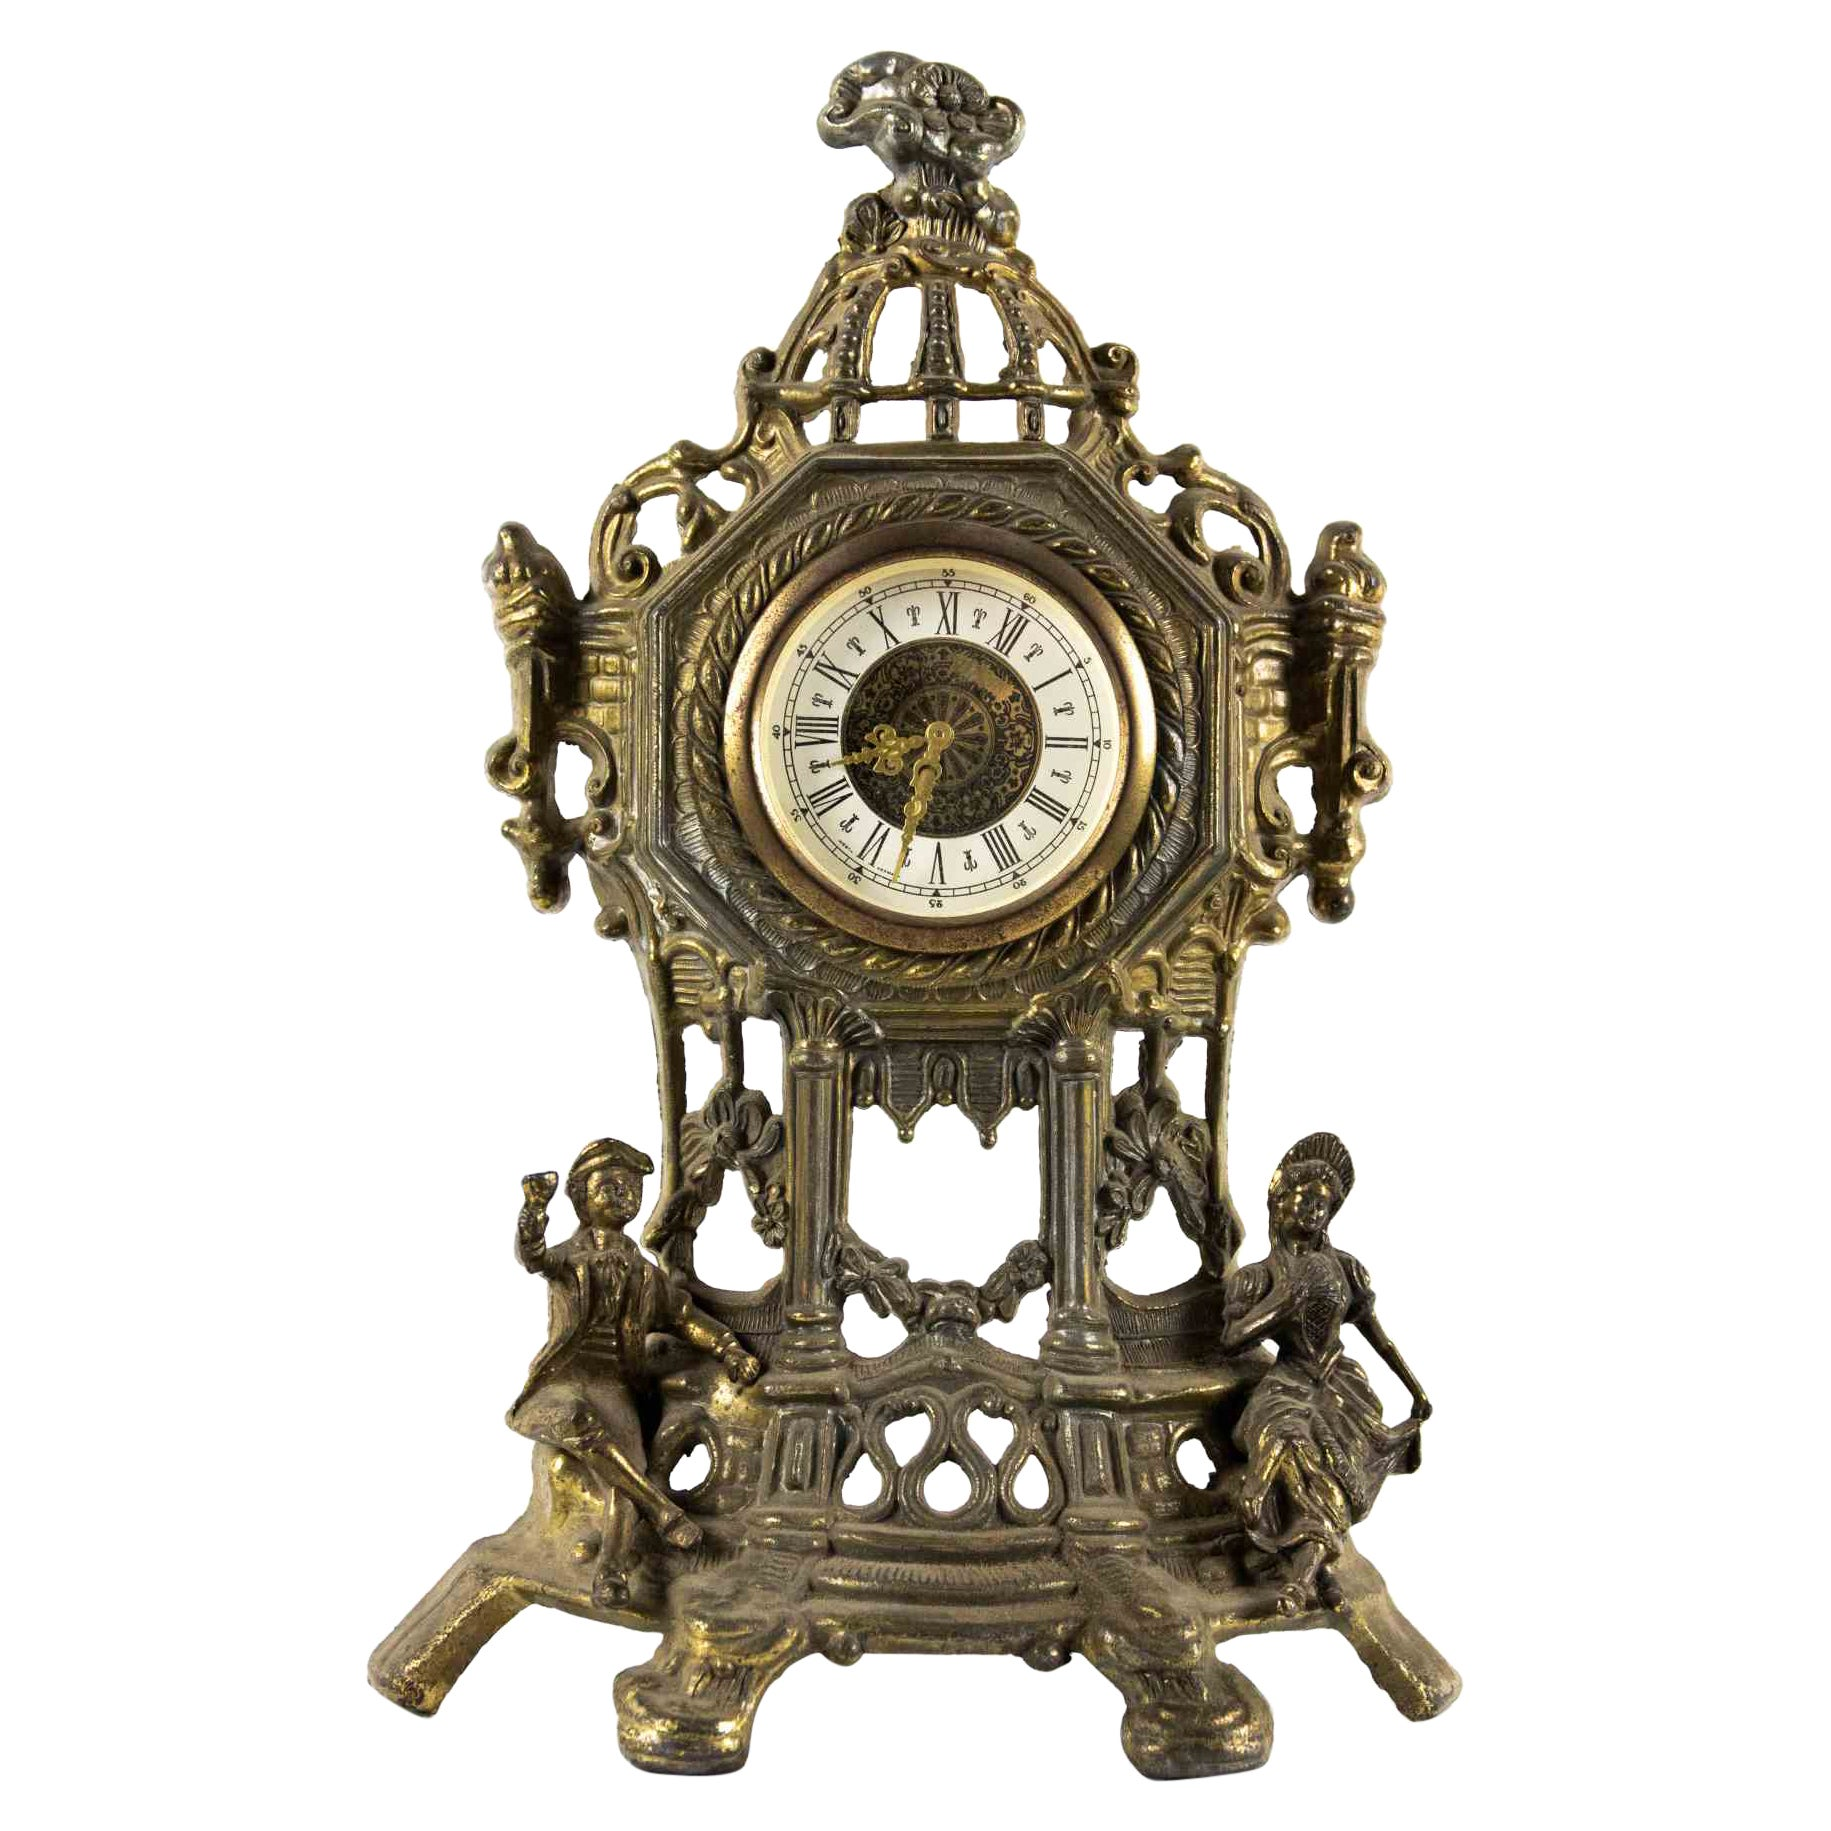 Vintage Table Clock, Early 20th Century